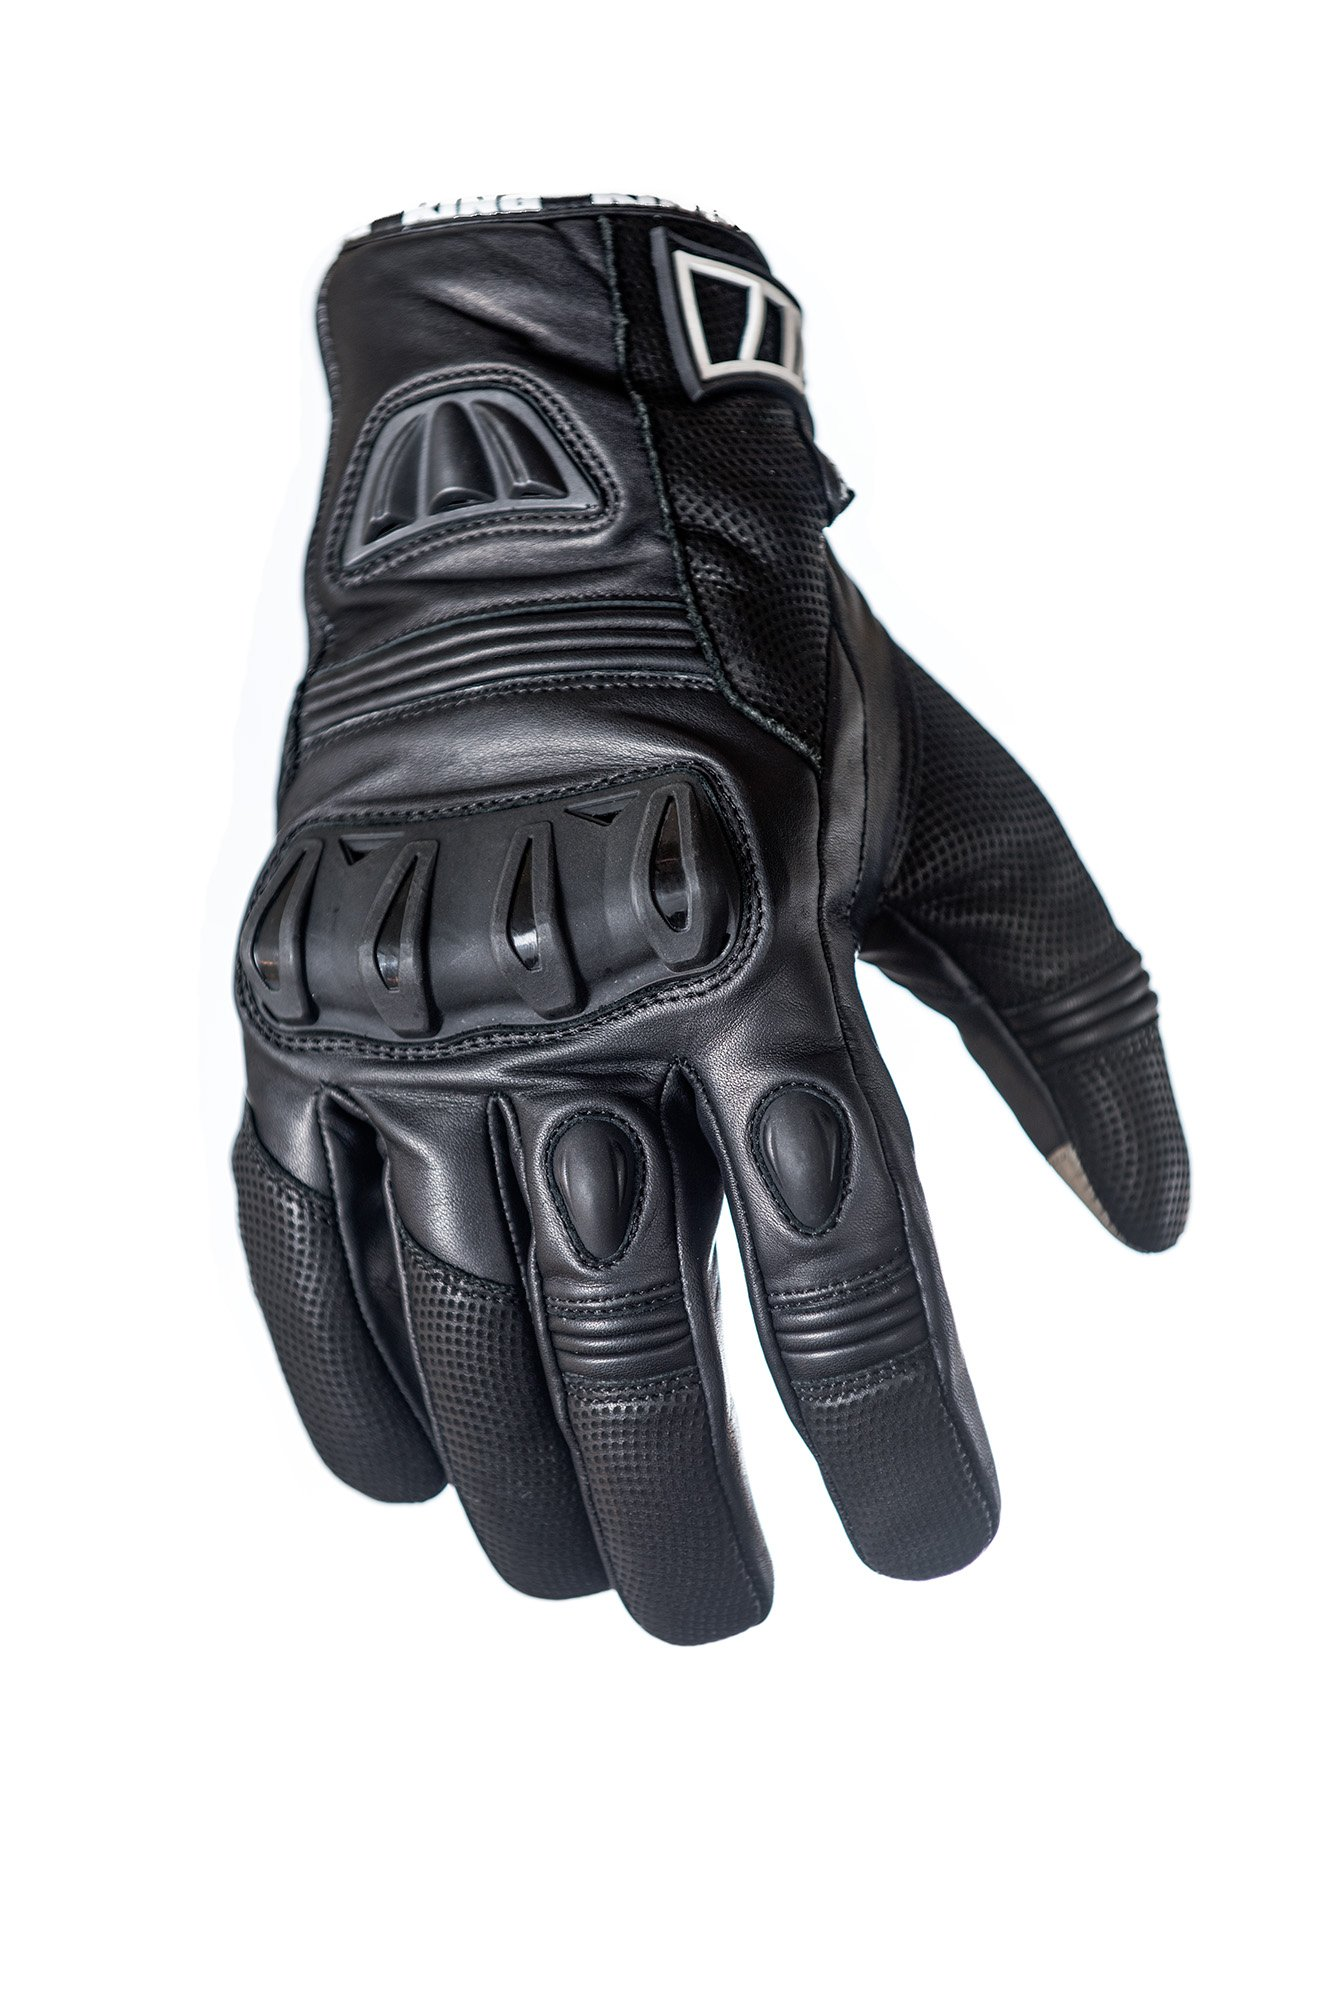 Protect the King Raven Premium Leather Motorcycle Sport Biker Gloves (XX-Large)